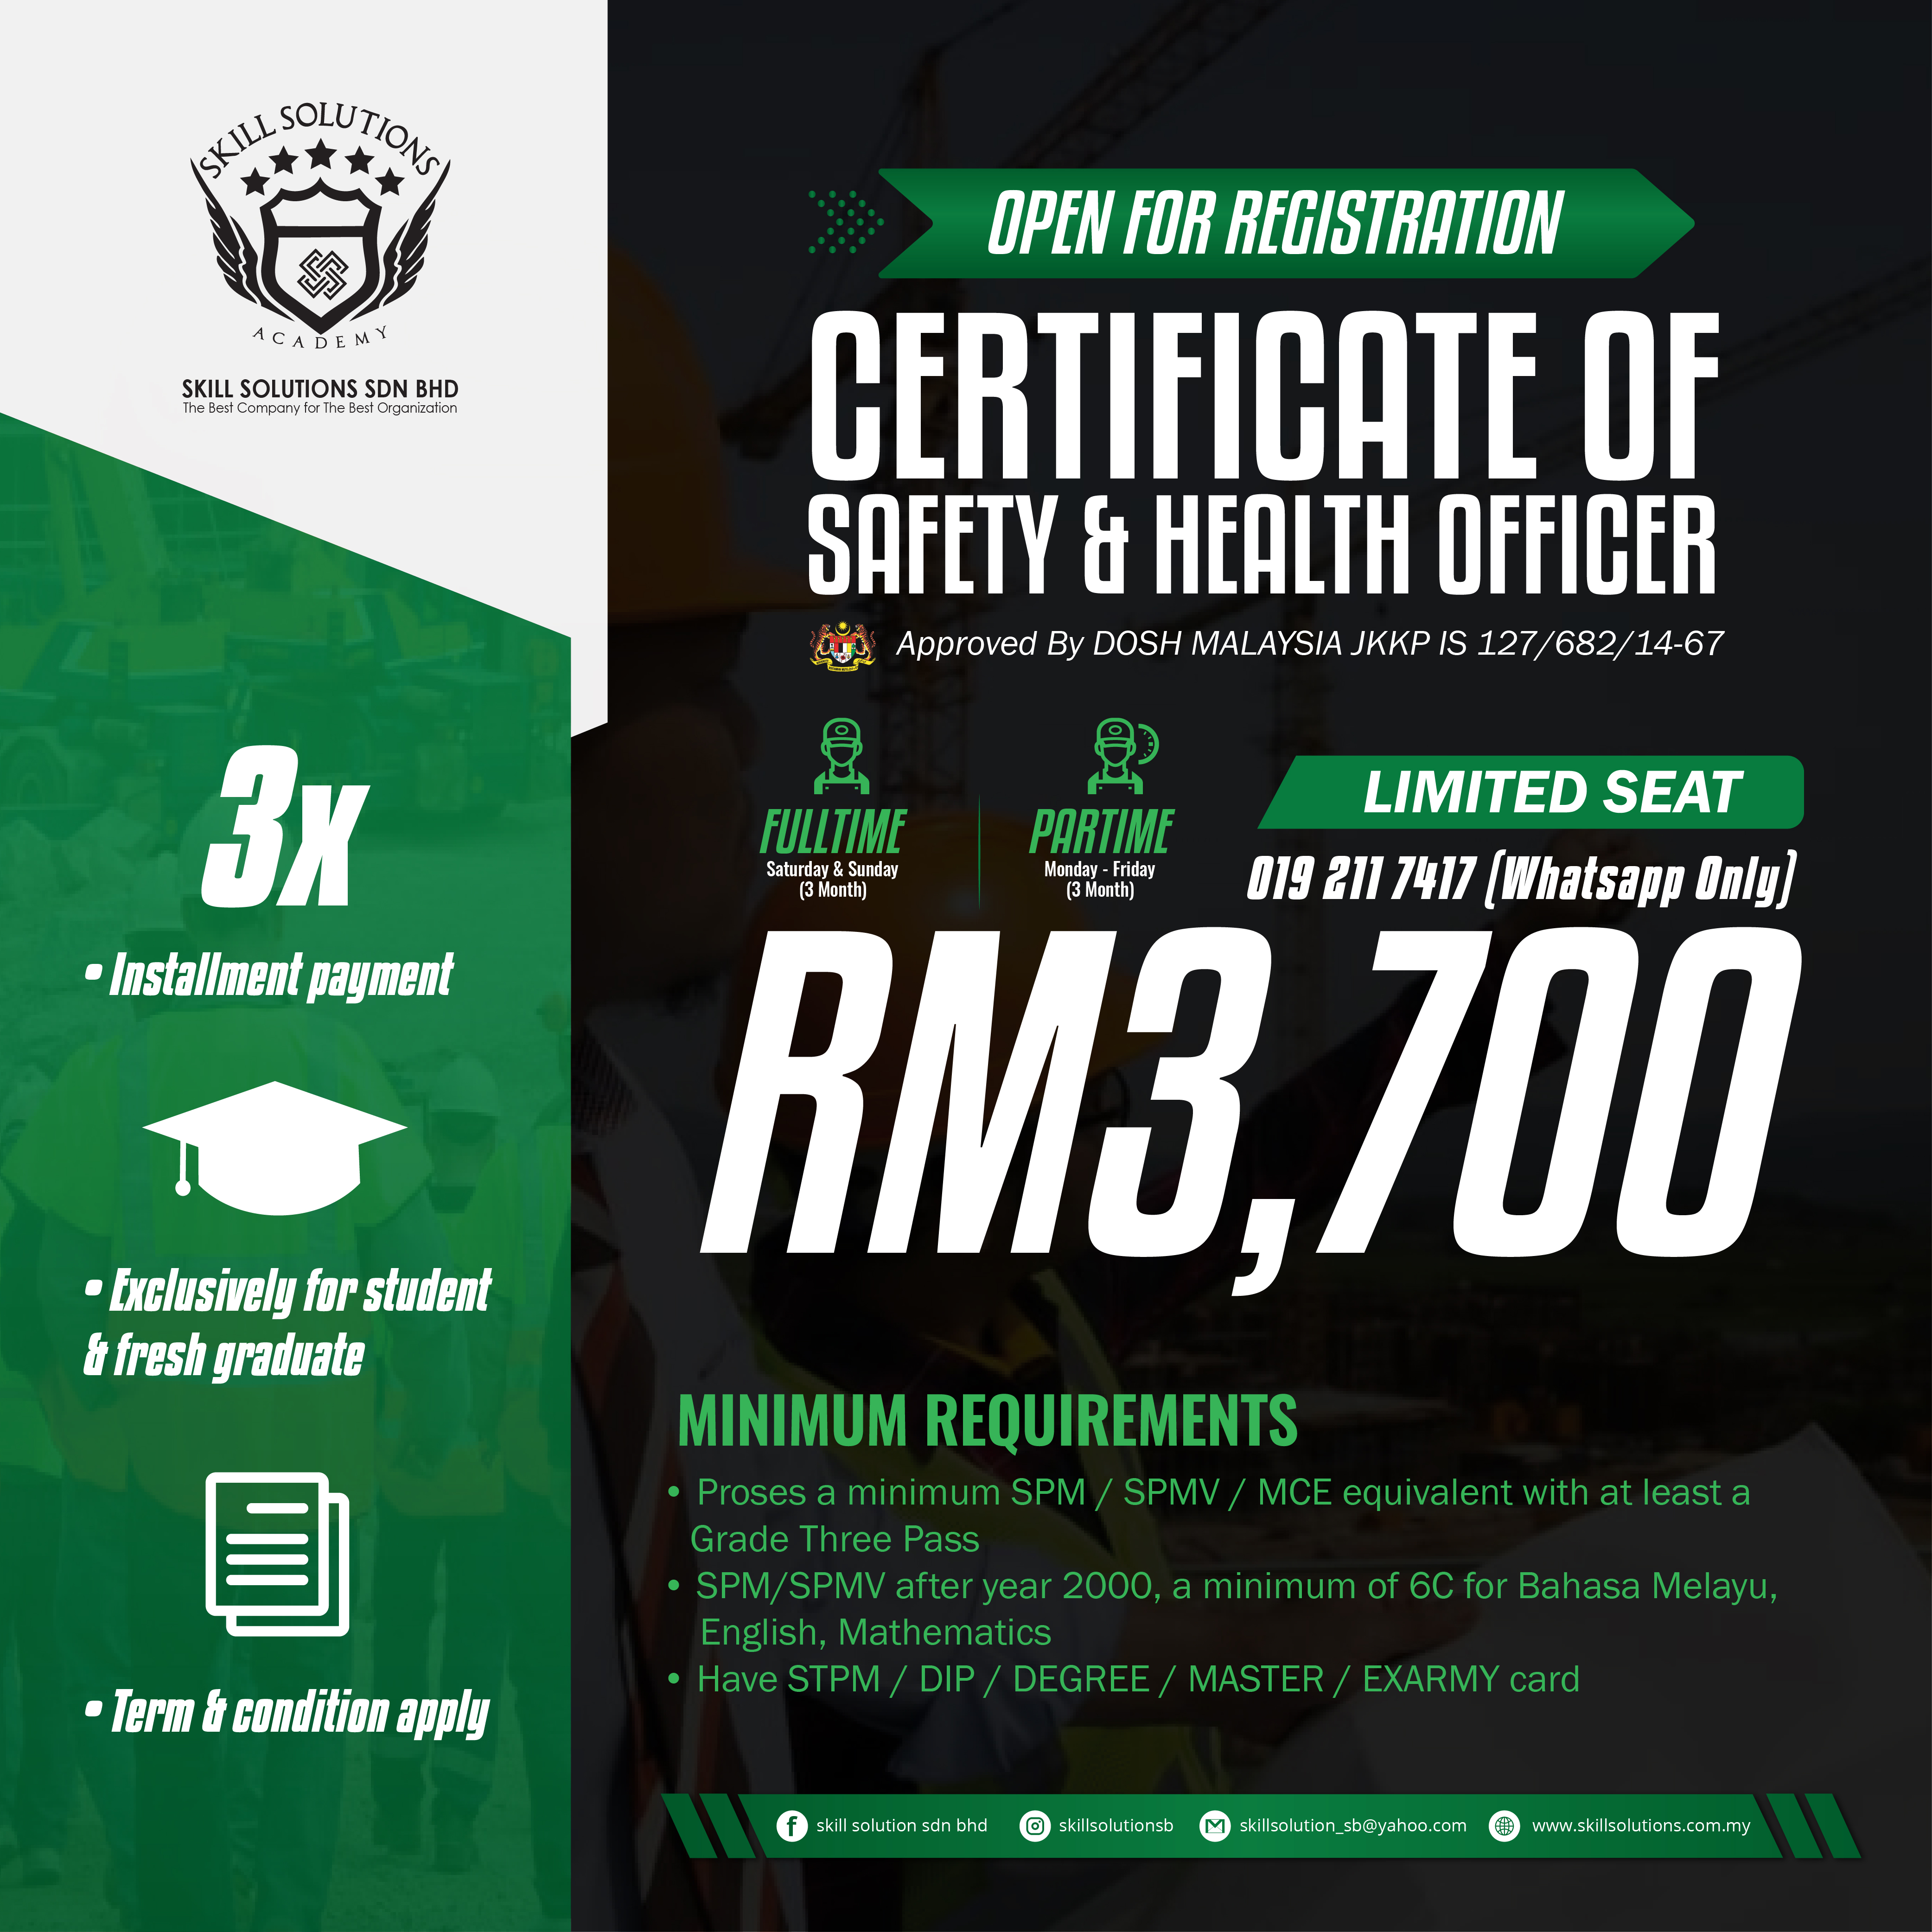 Safety and Health Officer Rm 3700 02